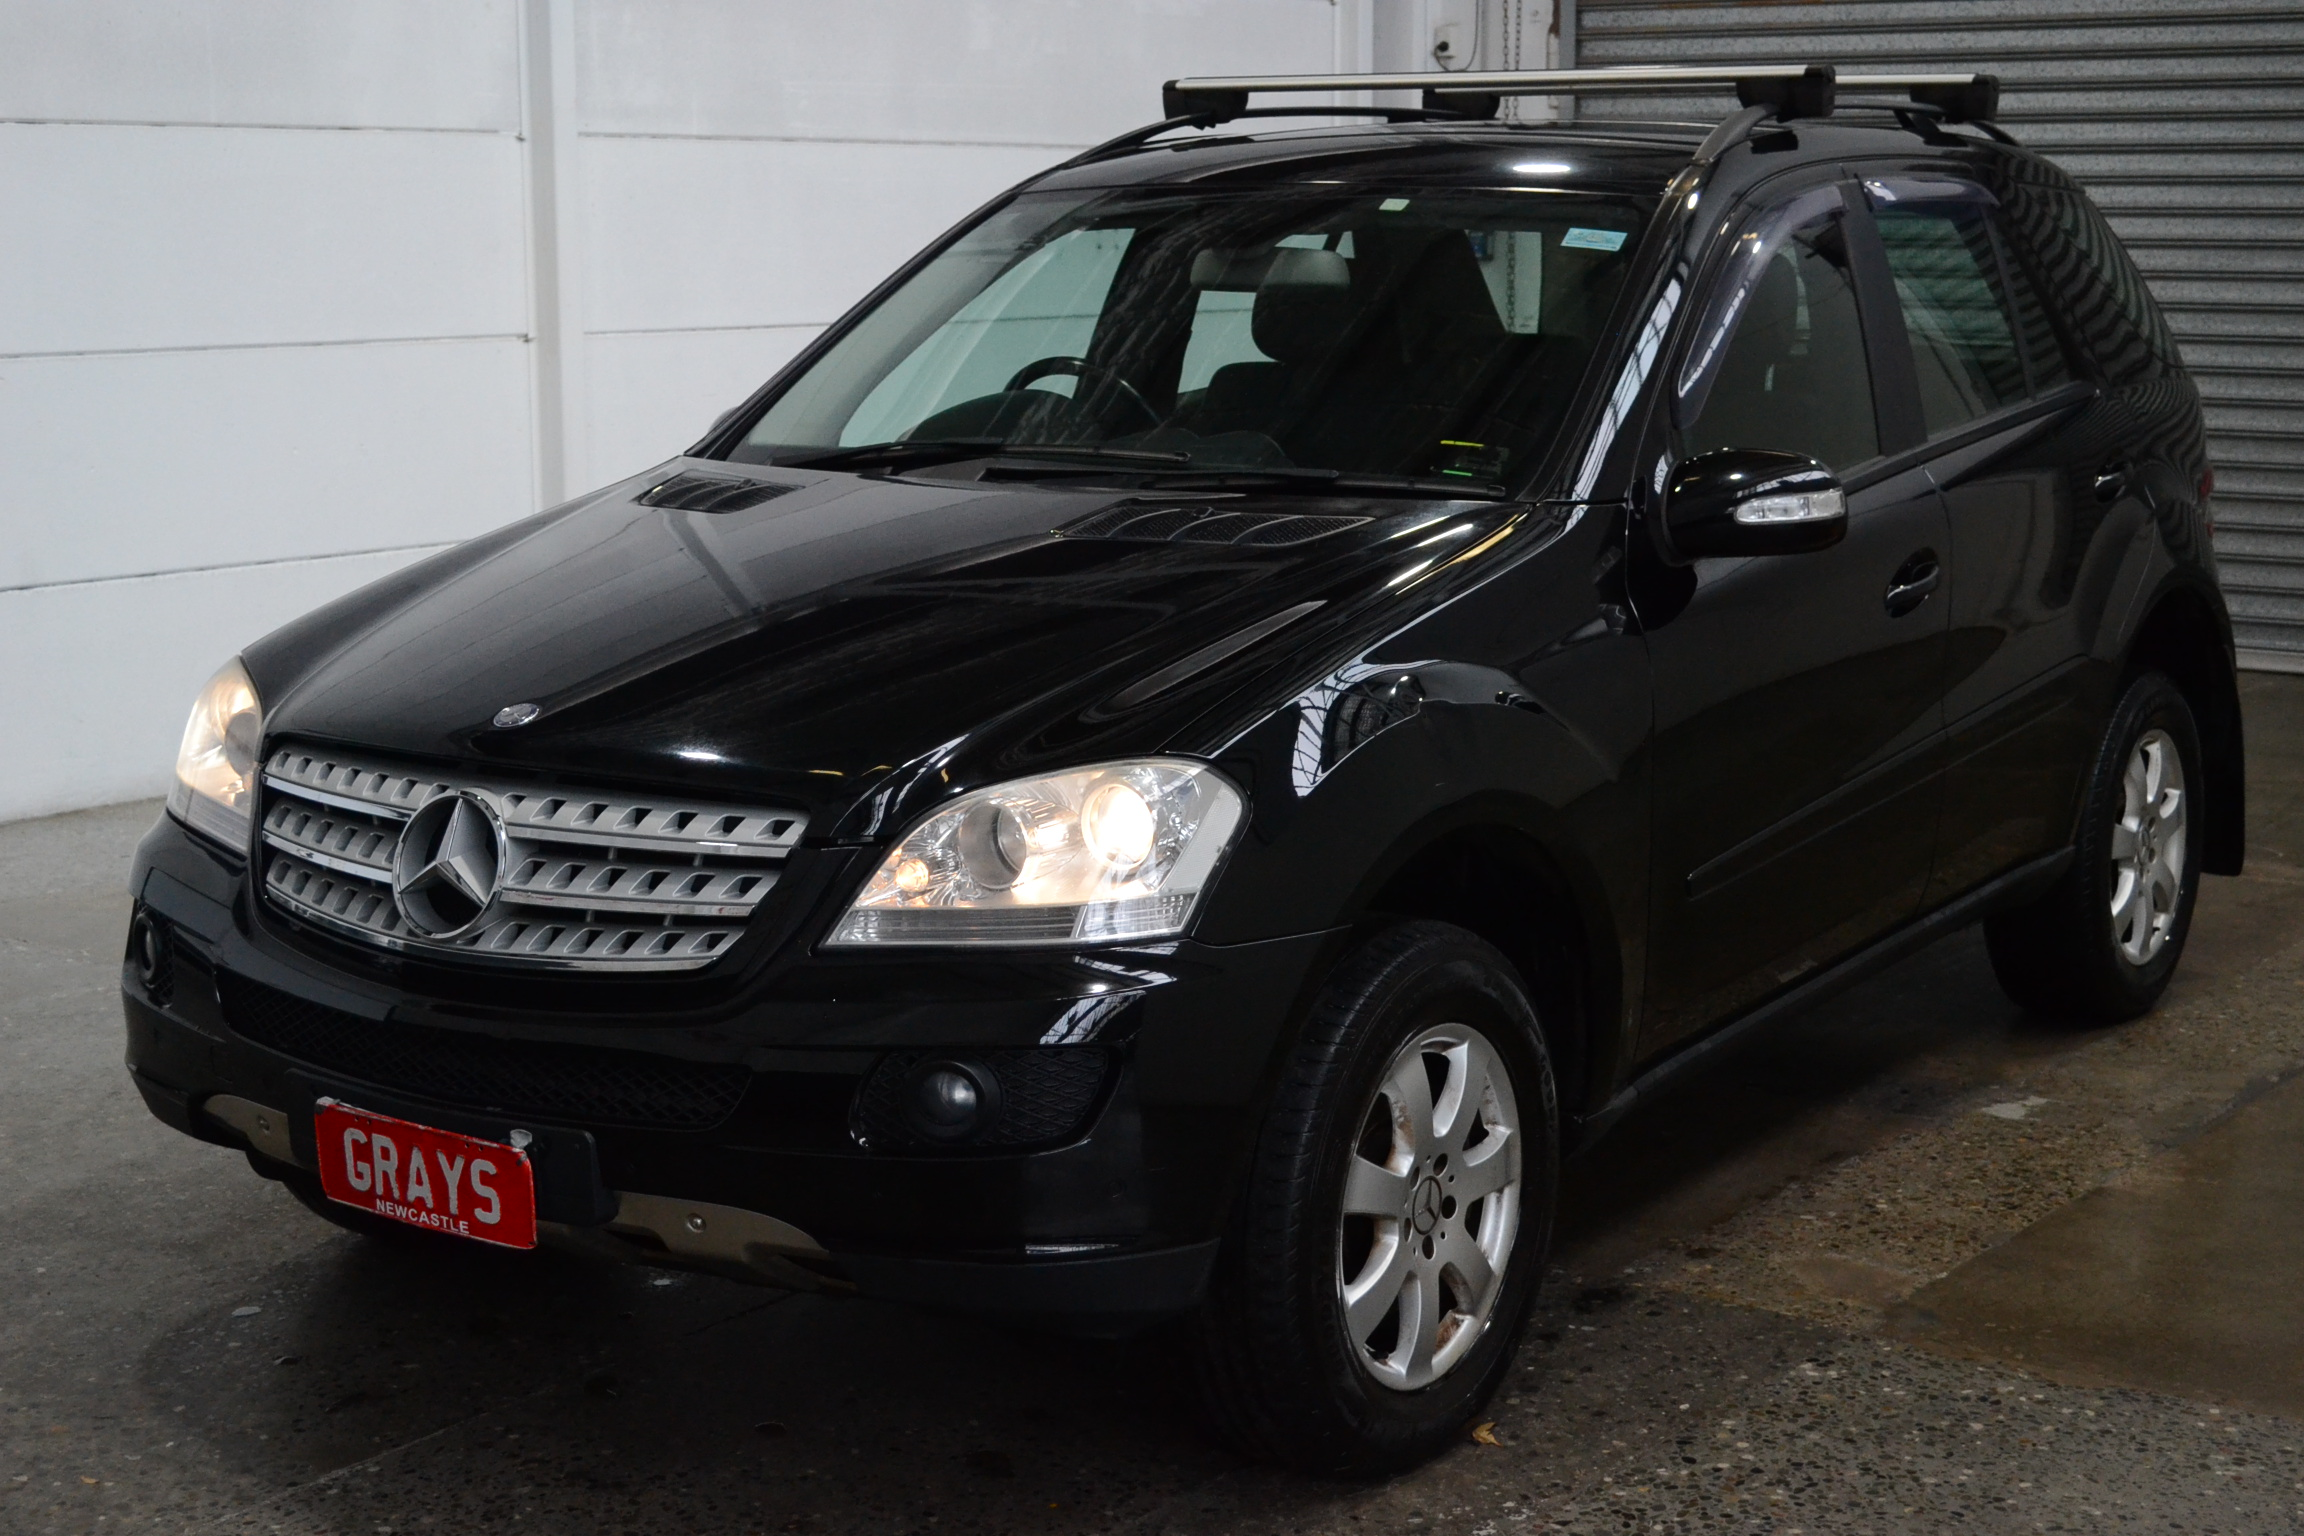 2007 Mercedes Benz ML280 CDI W164 Turbo Diesel Automatic Wagon